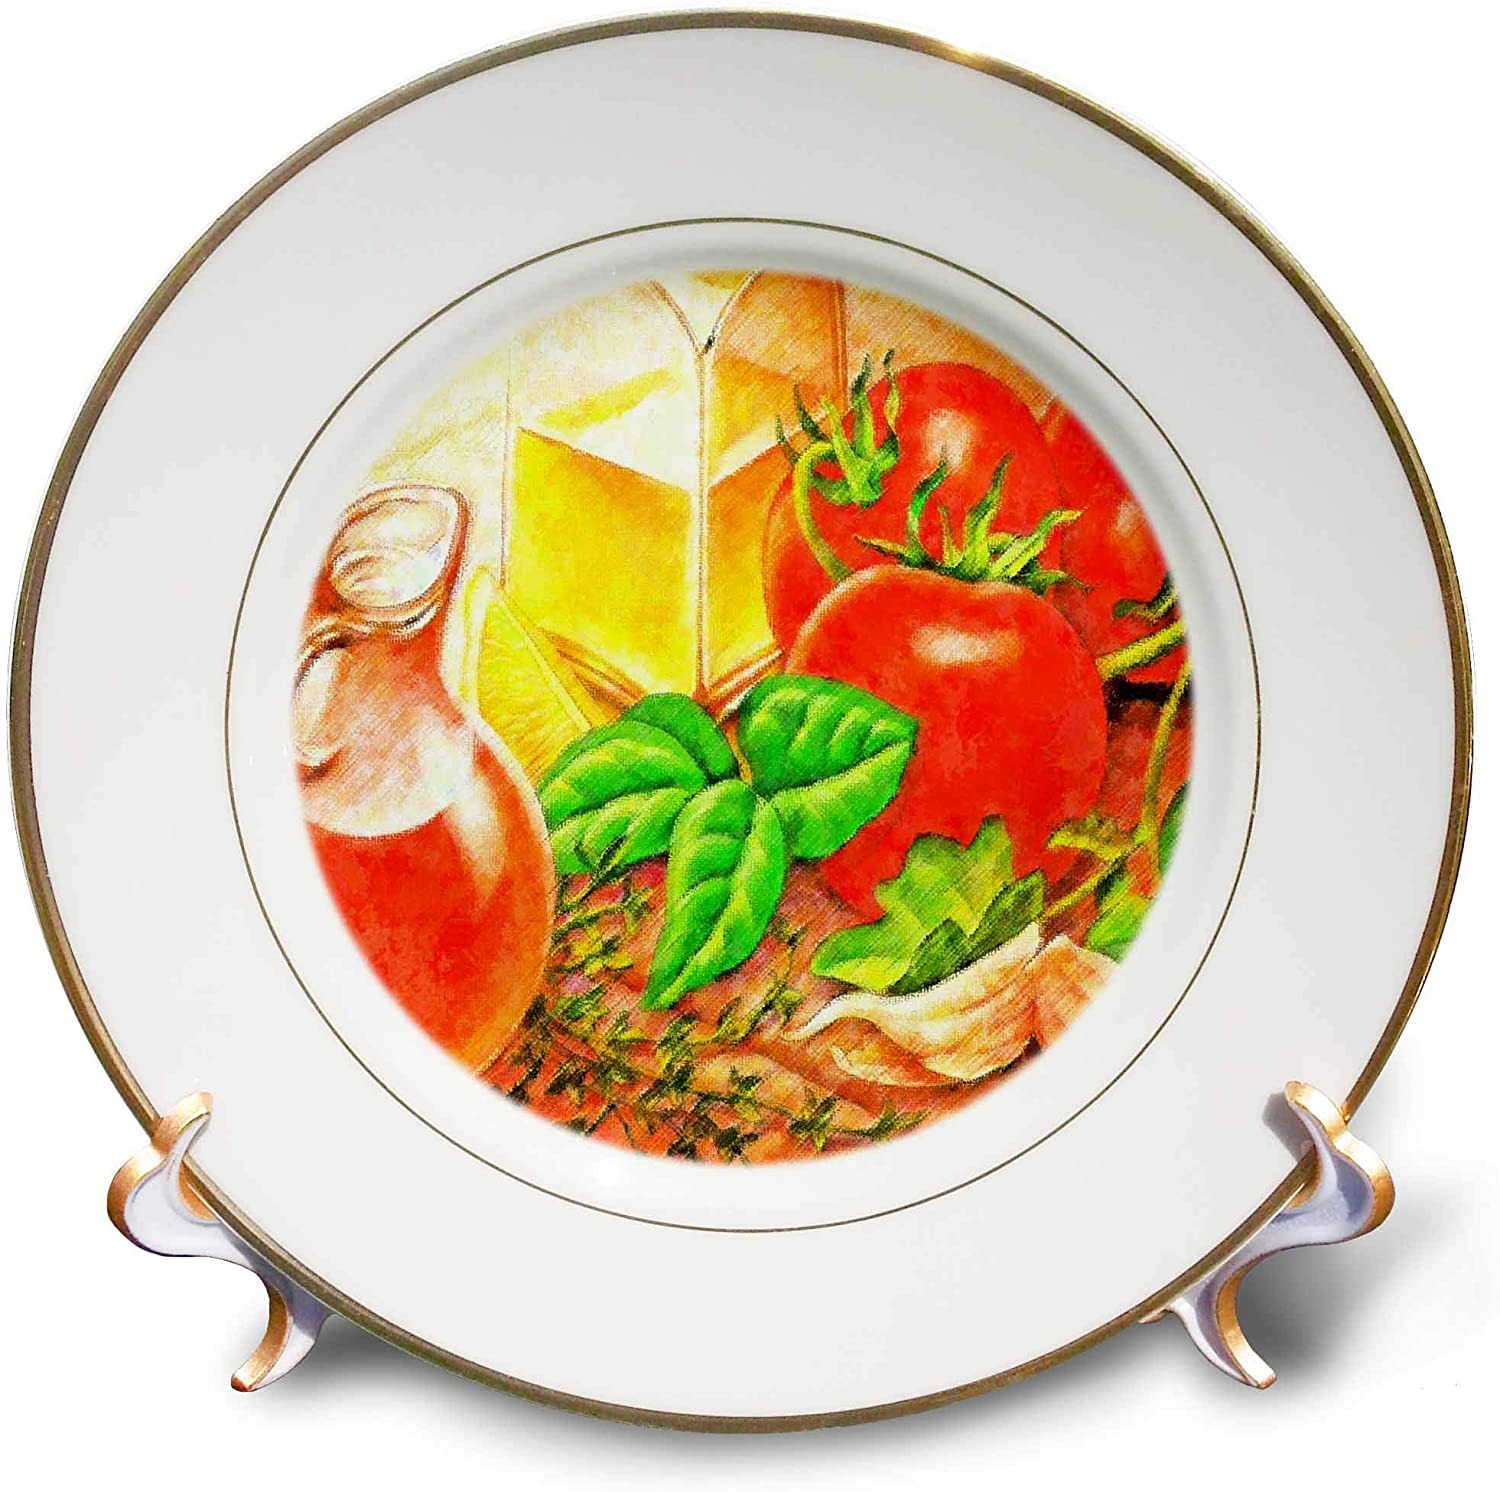 3dRose Lens Art by Florene - Impressionism Art - Image of Italian Table Set with Olive Oil Tomatoes and Parsley - 8 inch Porcelain Plate (cp_322672_1)